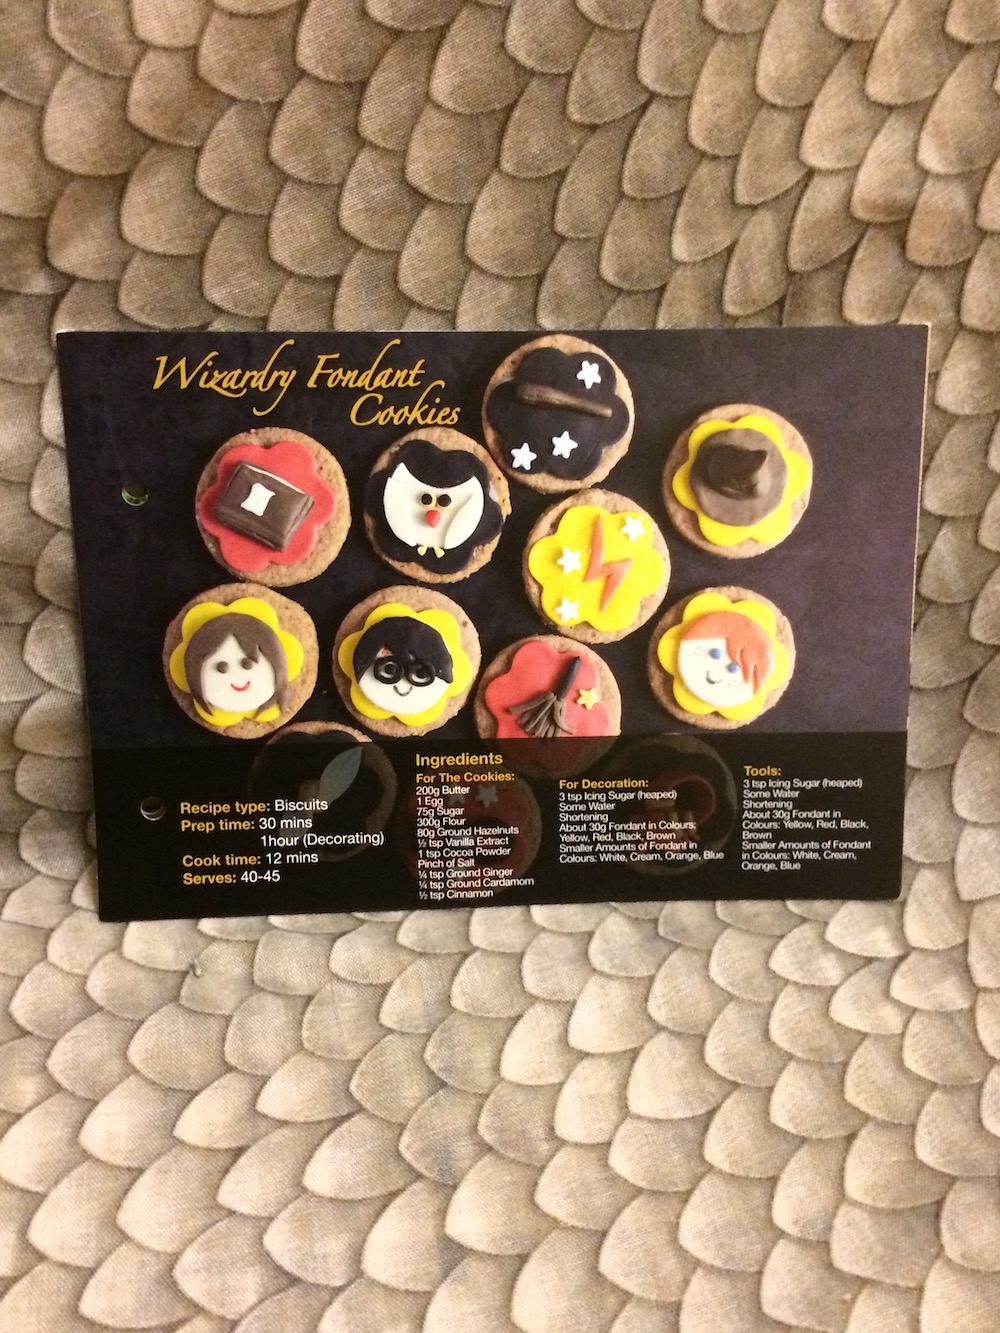 One of this month's recipe cards shows how to make wizardry fondant cookies.